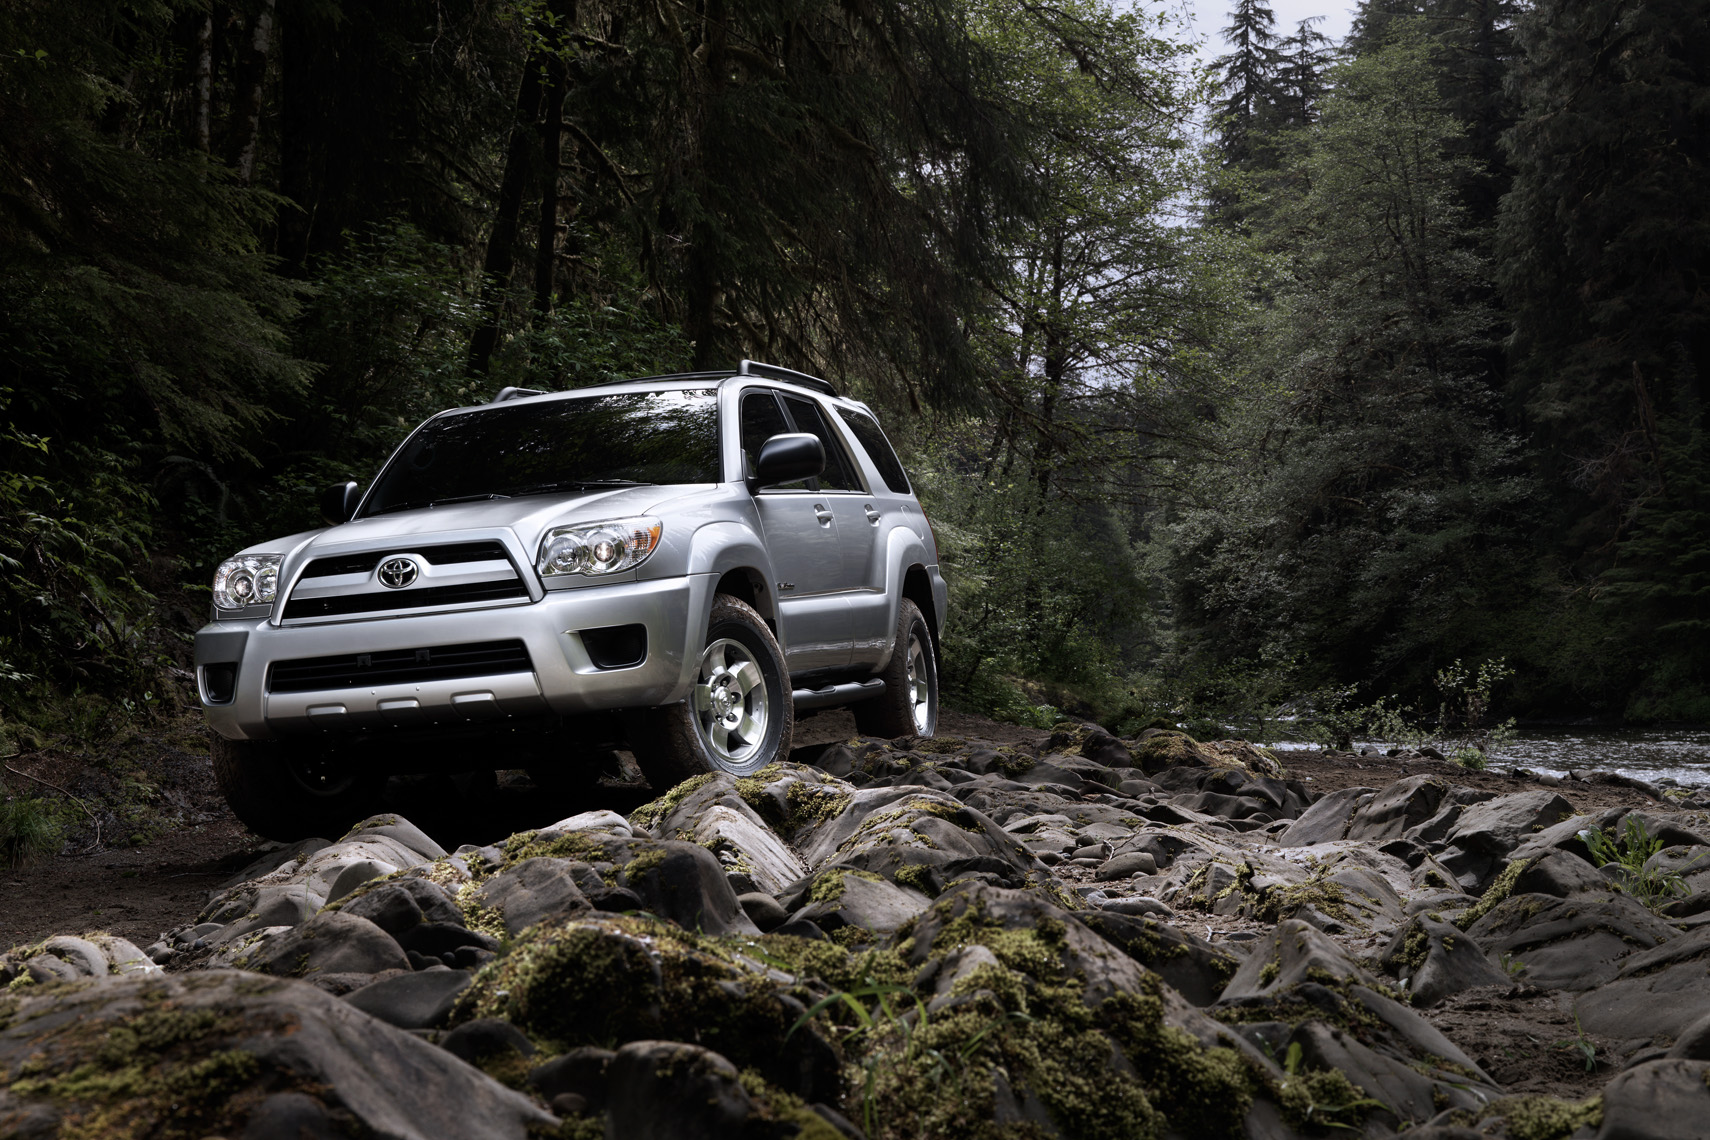 4Runner on Rocks 10-2008-DUP.jpg